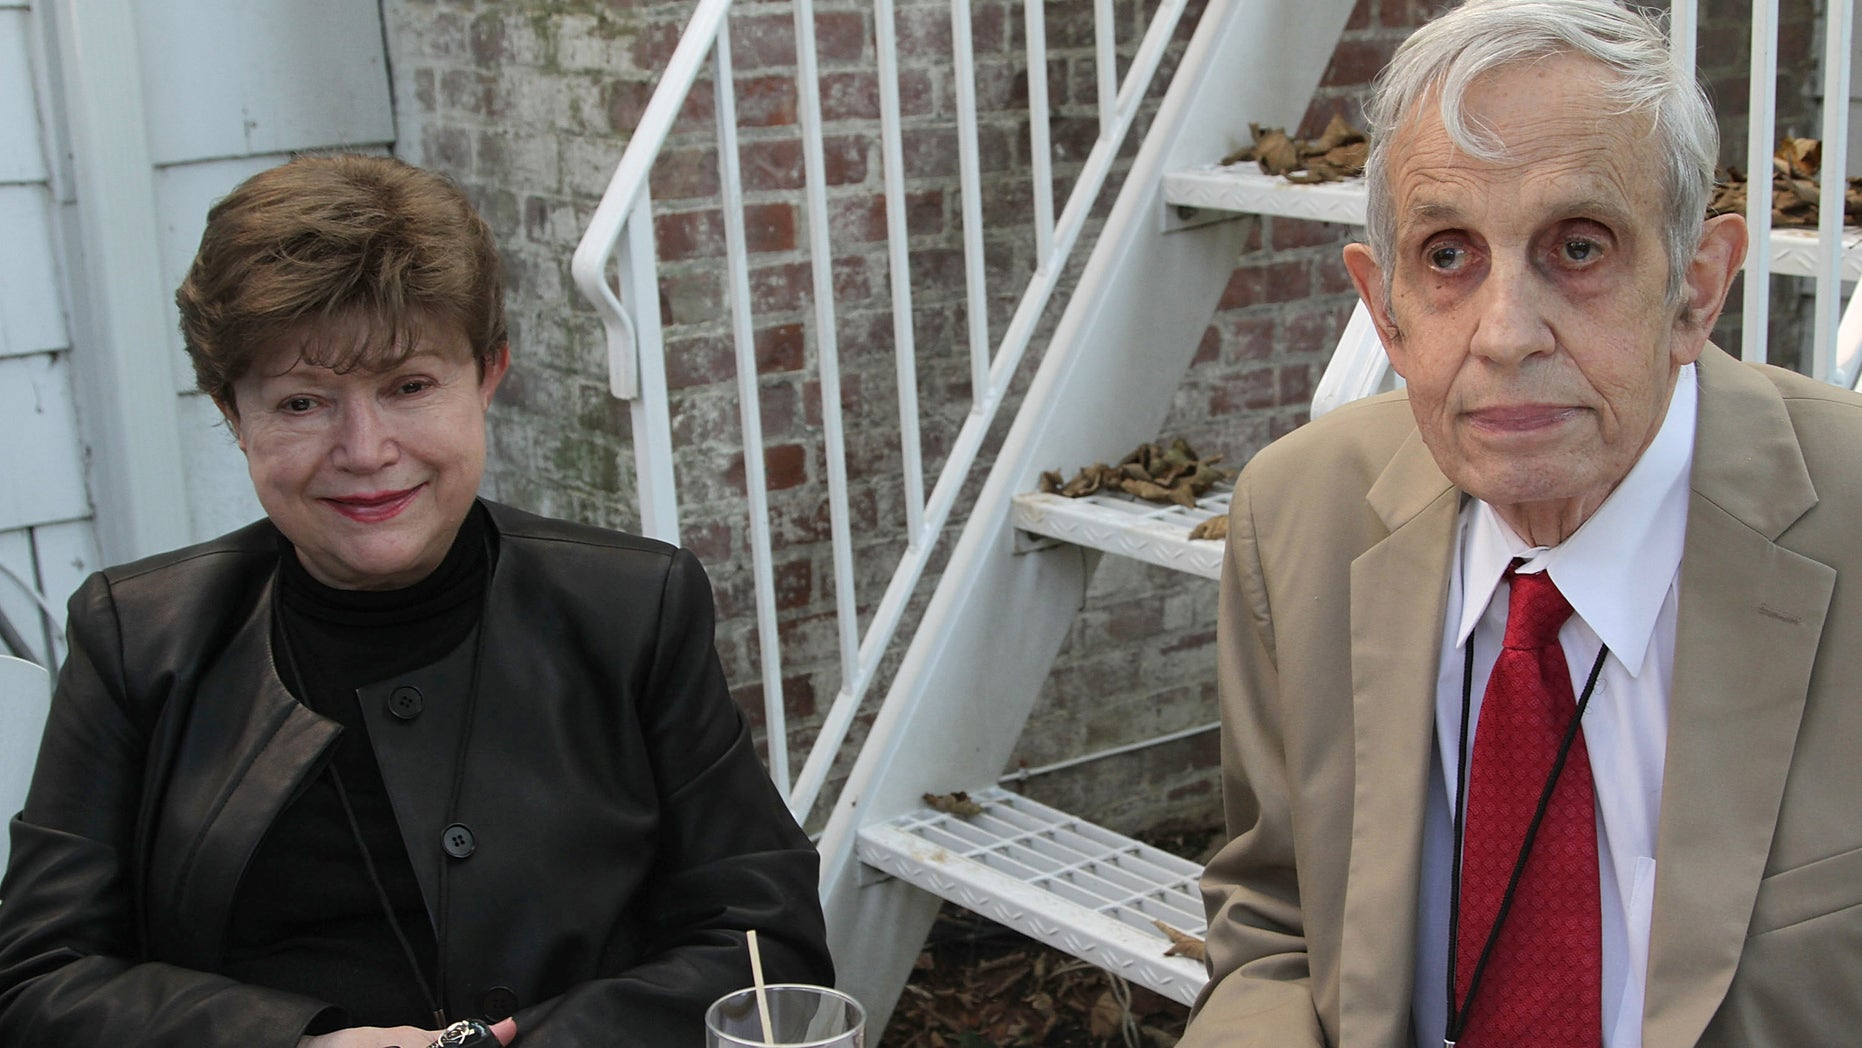 EAST HAMPTON, NY - OCTOBER 05:  John Nash and wife Alicia Nash attend the Nobel Laureate Exhibition Reception during the 20th Hamptons International Film Festival at The Maidstone Hotel on October 5, 2012 in East Hampton, New York.  (Photo by Sonia Moskowitz/Getty Images)